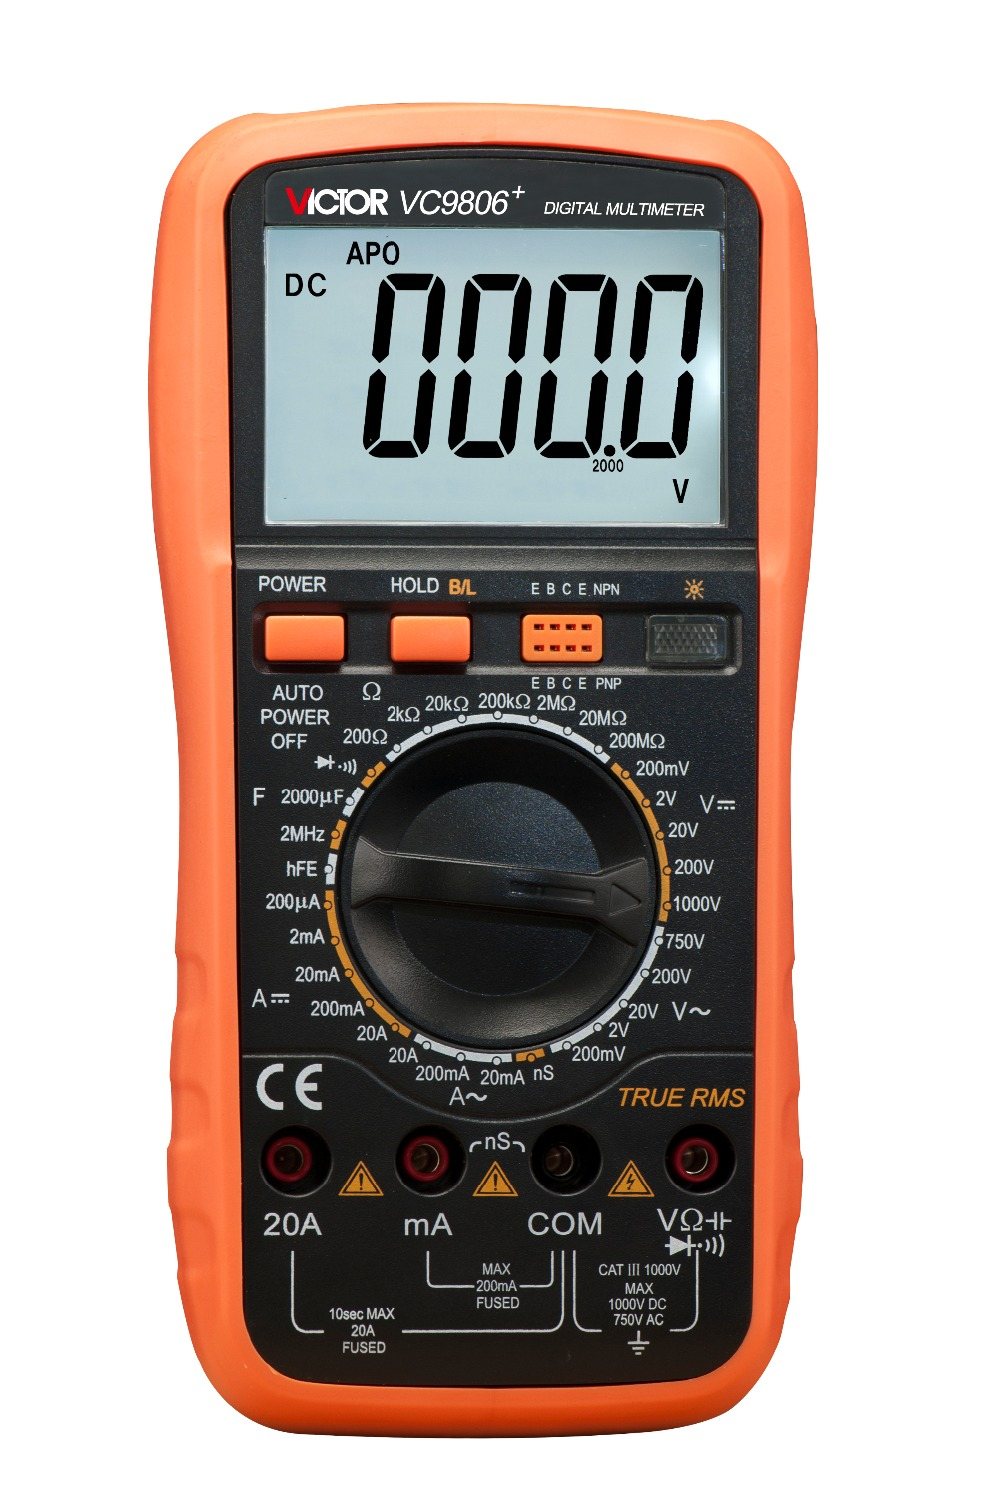 VC9807A+ Digital Multimeter multimetro AC DC Ammeter Voltmeter Ohmmeter conductivity Capacitance Frequency tester f47n multimeter pointer mechanical capacitance meter ammeter voltmeter pocket